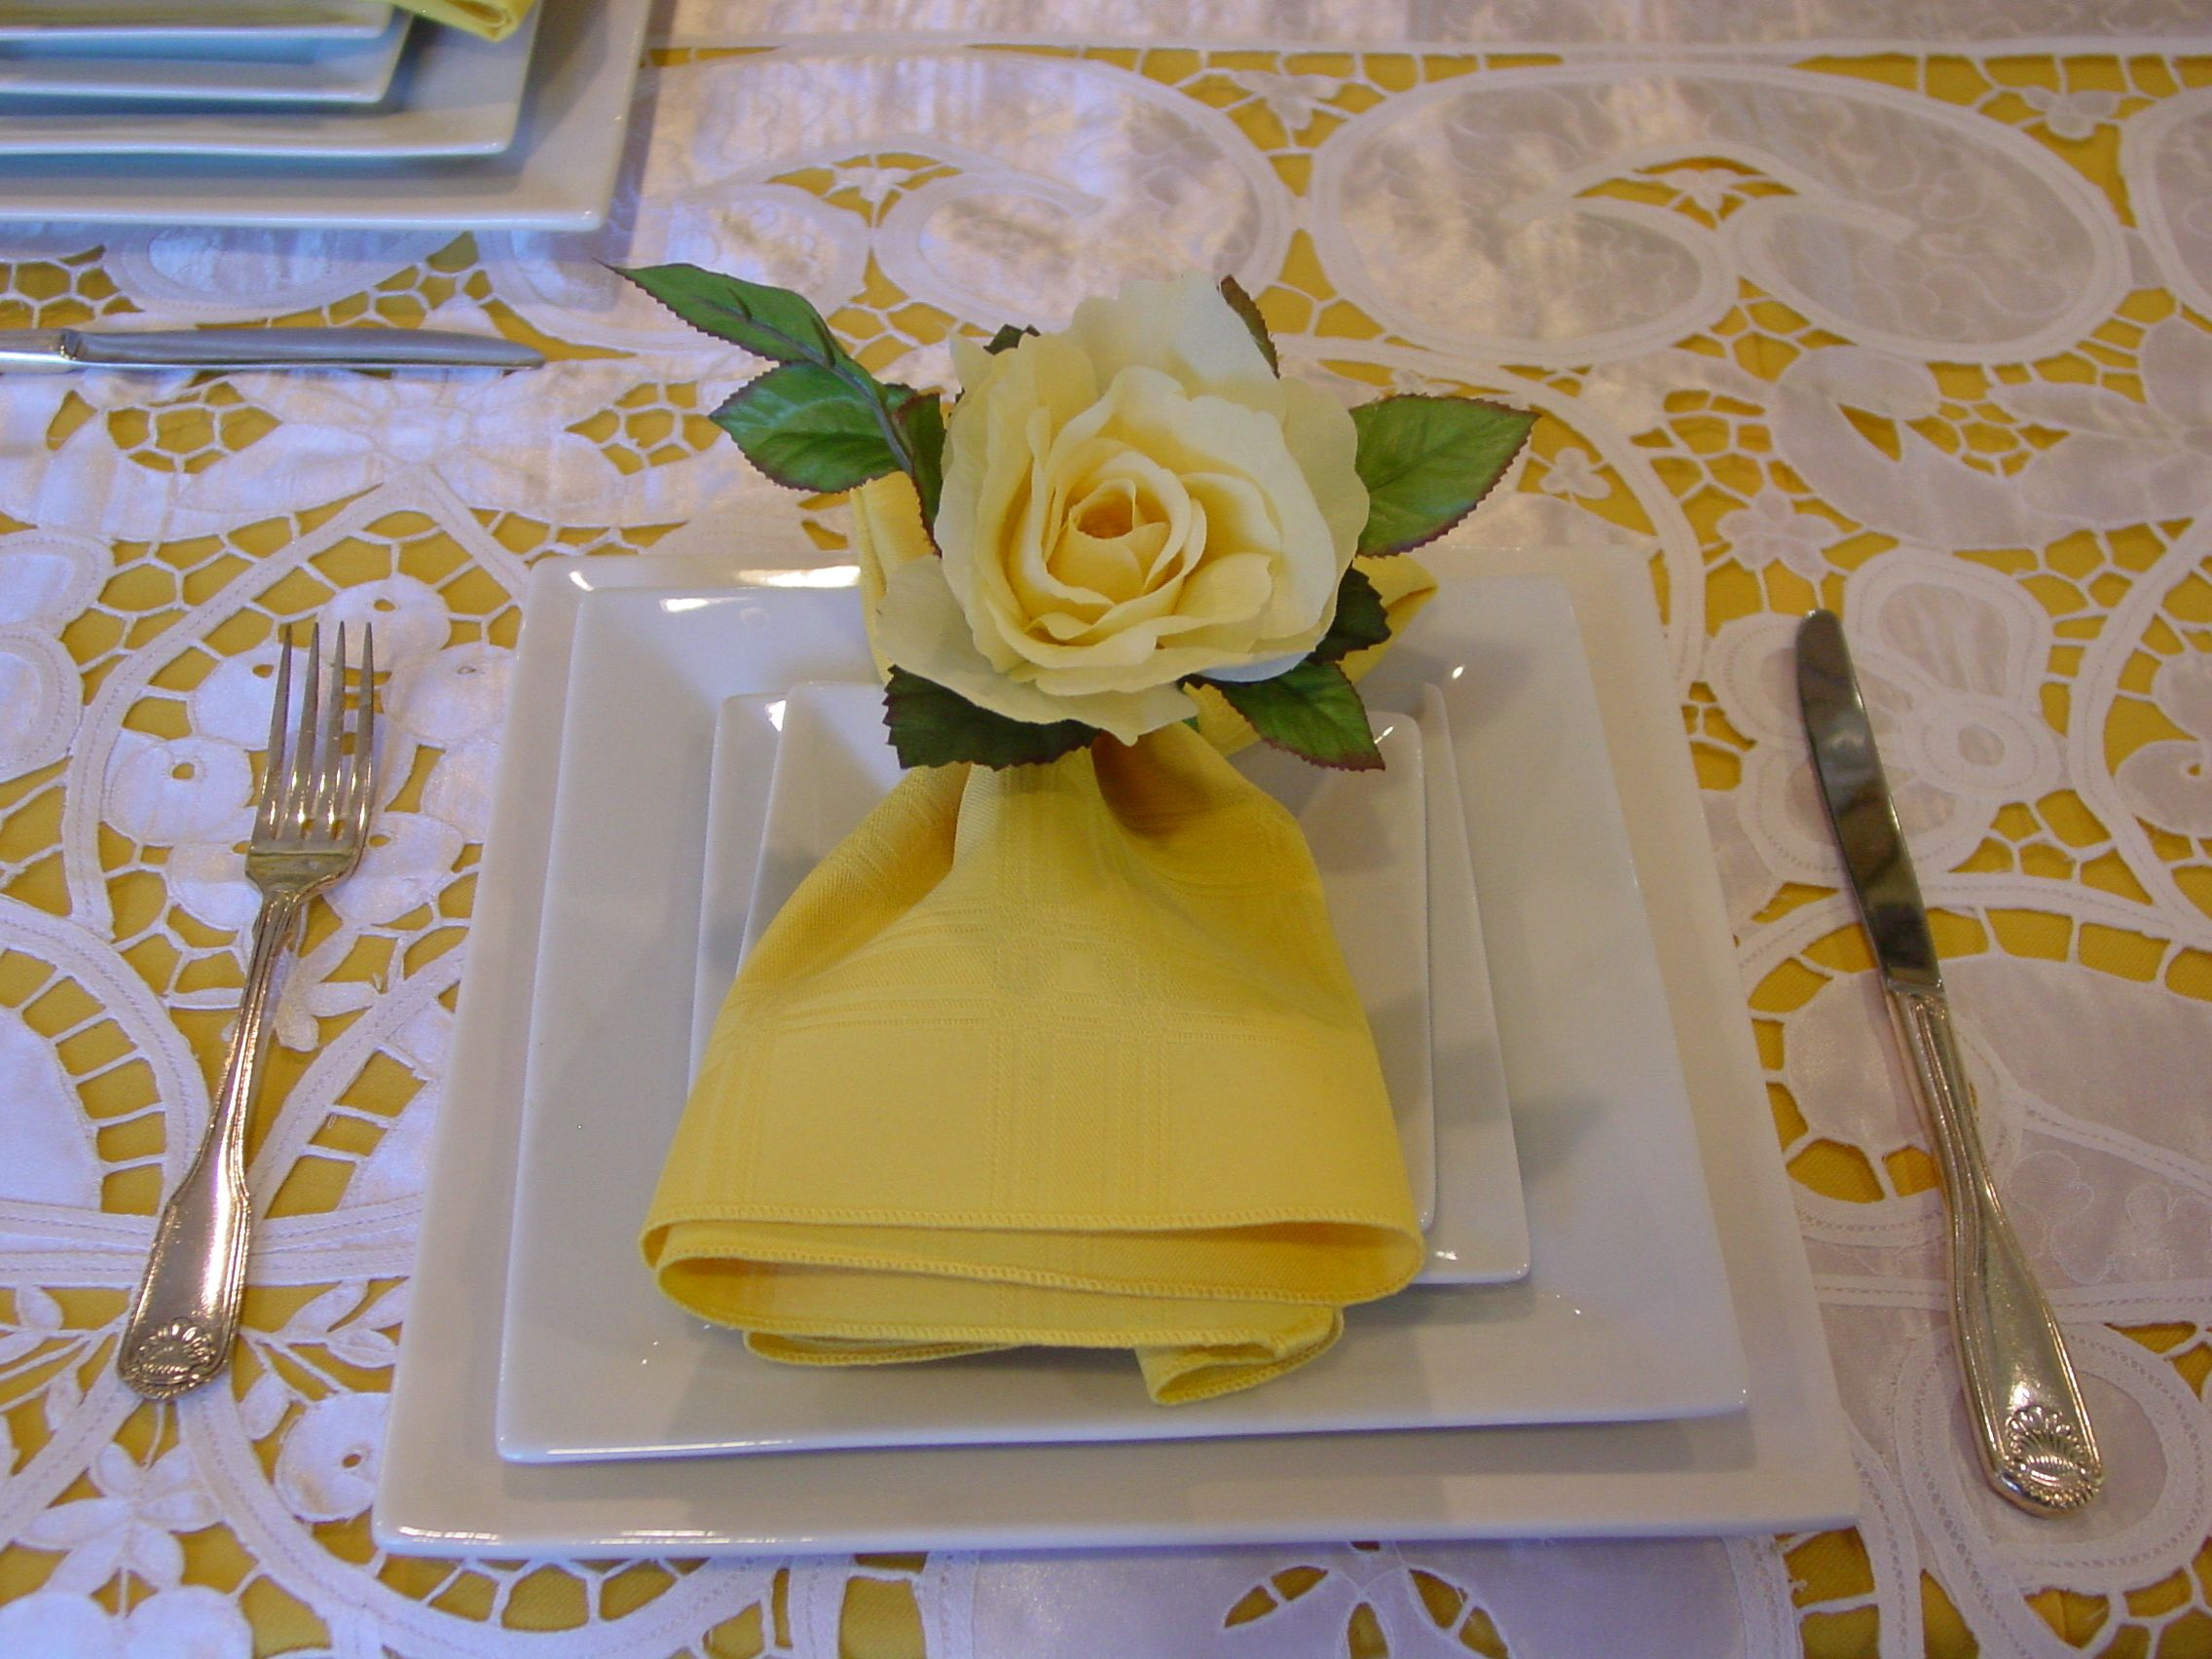 Yellow And Lace Linen With White Square Charger Plates